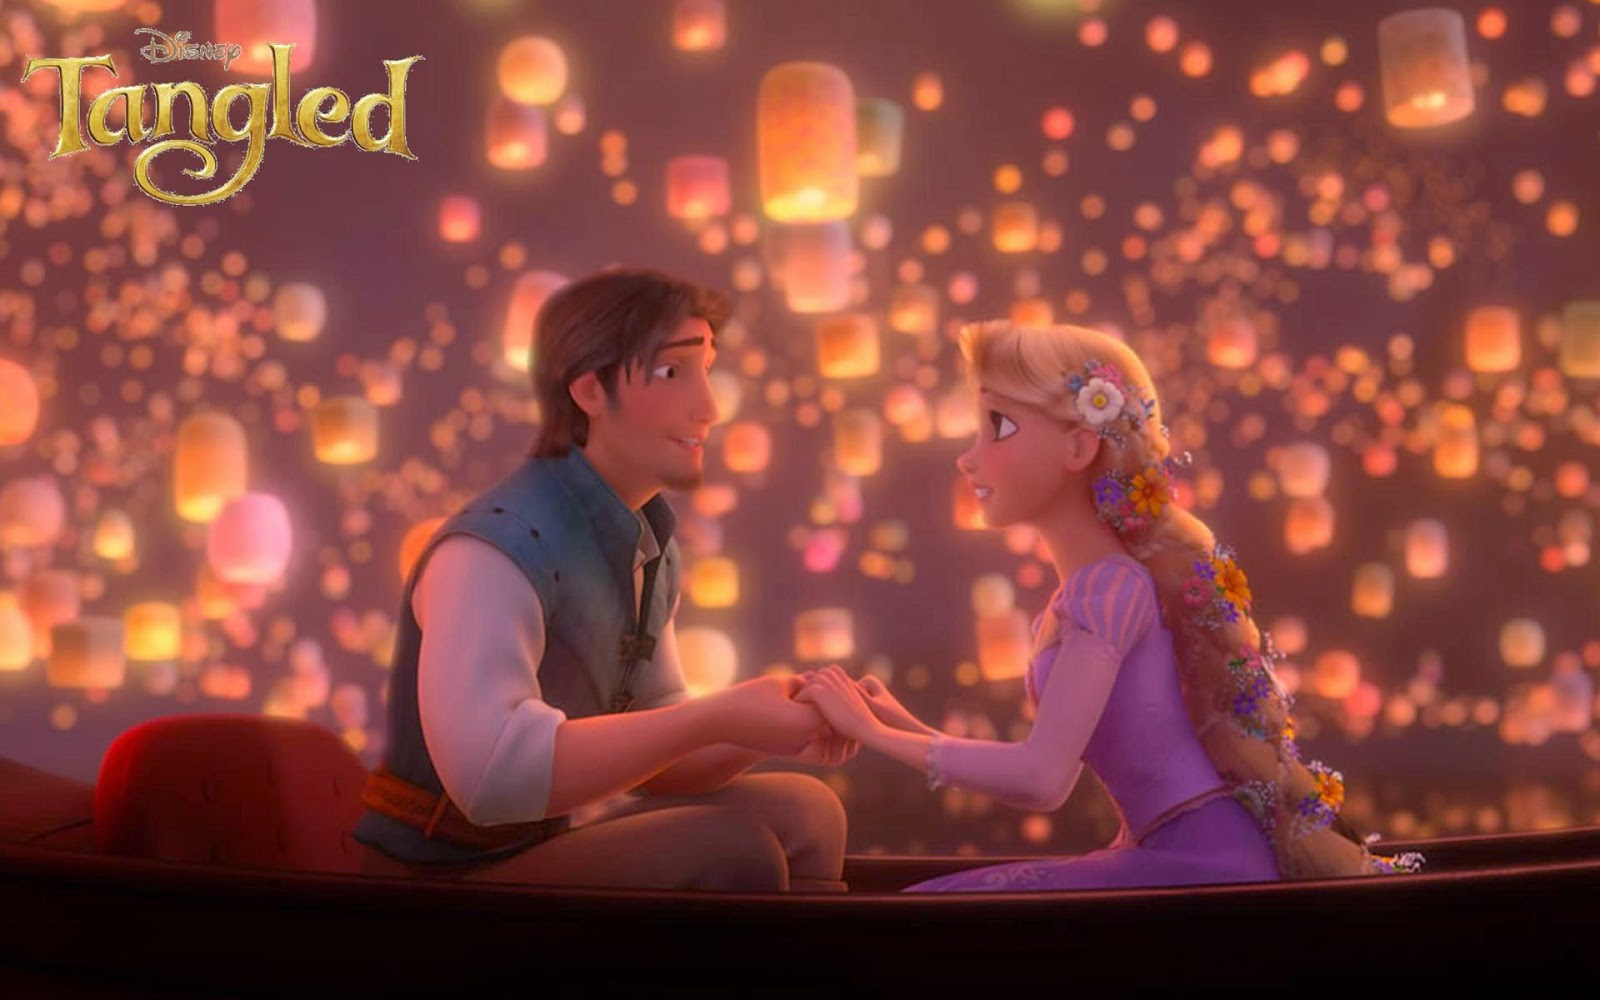 Desktop Wallpaper Disney Tangled Wallpaper Page 2 1600x1000